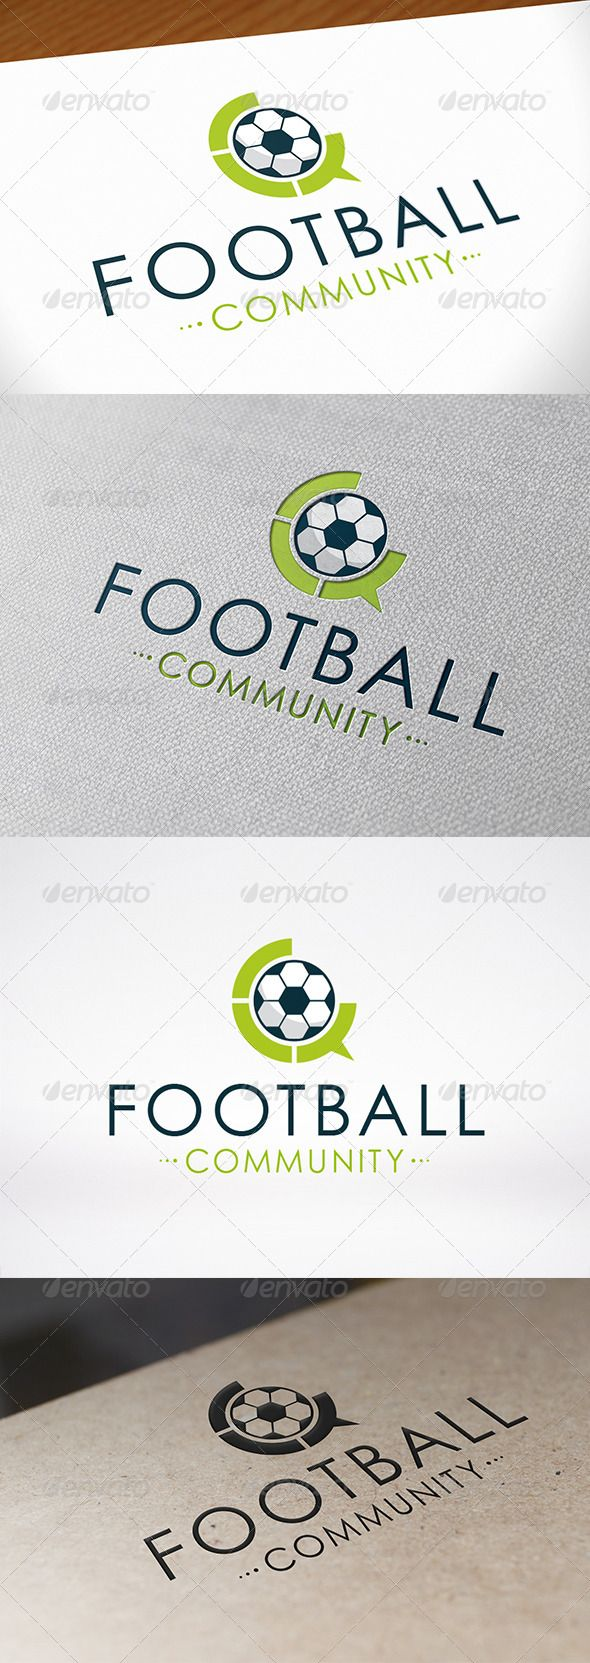 Football Chat  - Logo Design Template Vector #logotype Download it here: http://graphicriver.net/item/football-chat-logo-template/6826304?s_rank=402?ref=nexion